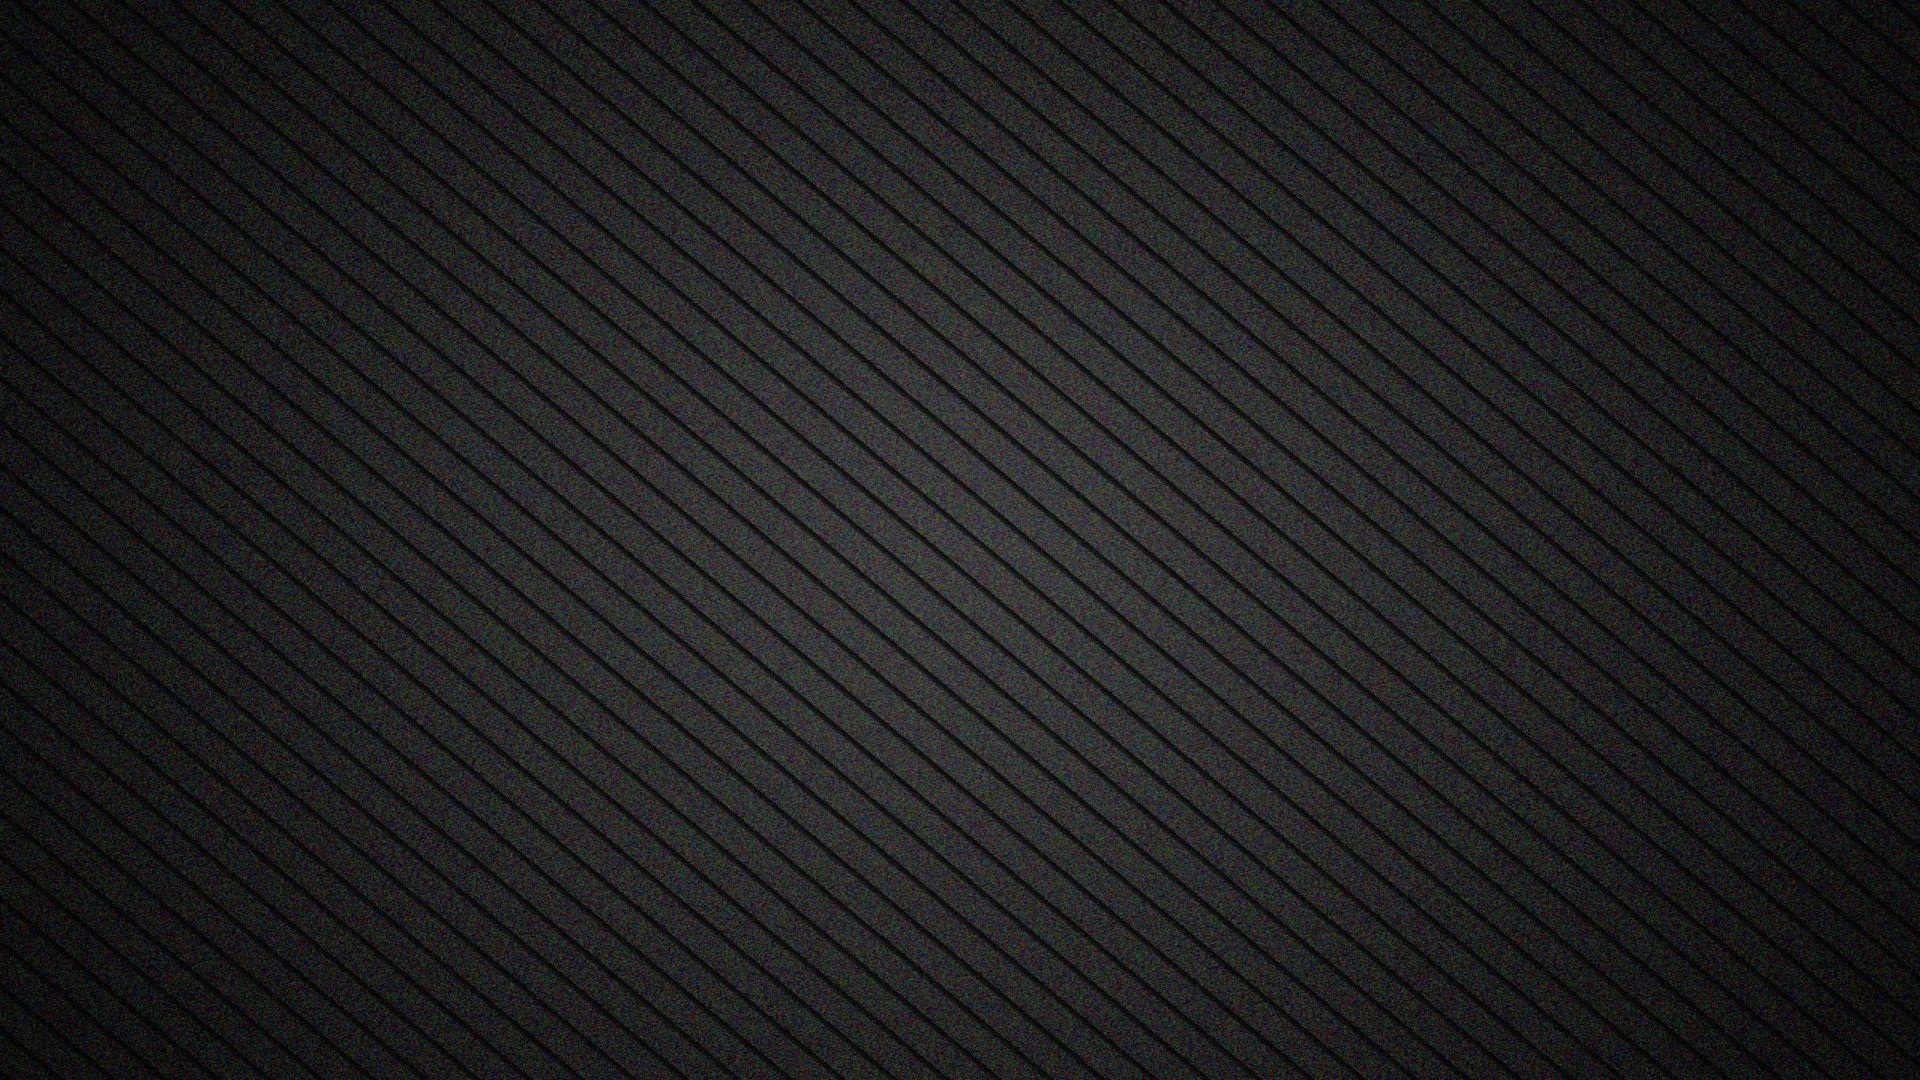 1920x1080 Black Lines Wallpapers desktop PC and Mac wallpapers